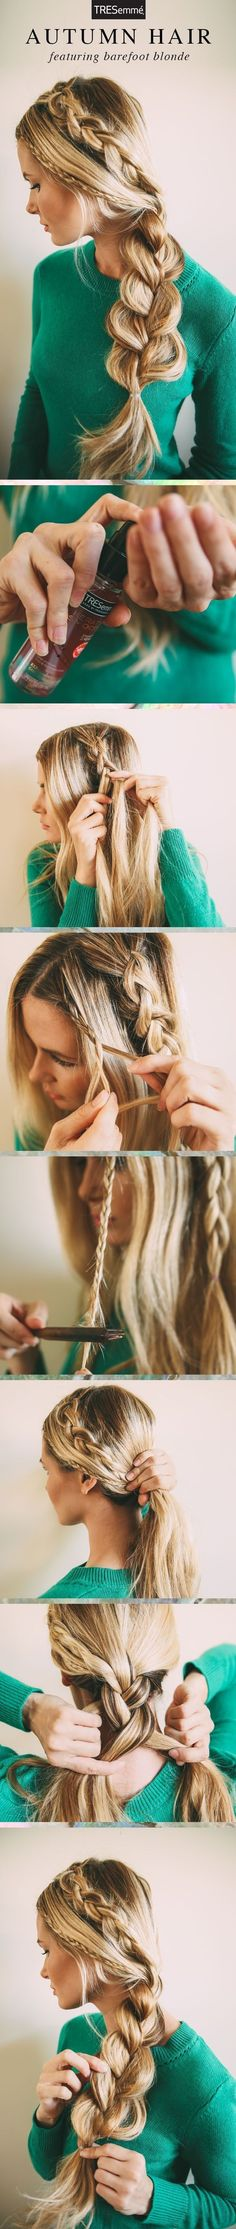 DIY – Nice Blonde Hairstyle – Step by Step Hair Tutorial #diy